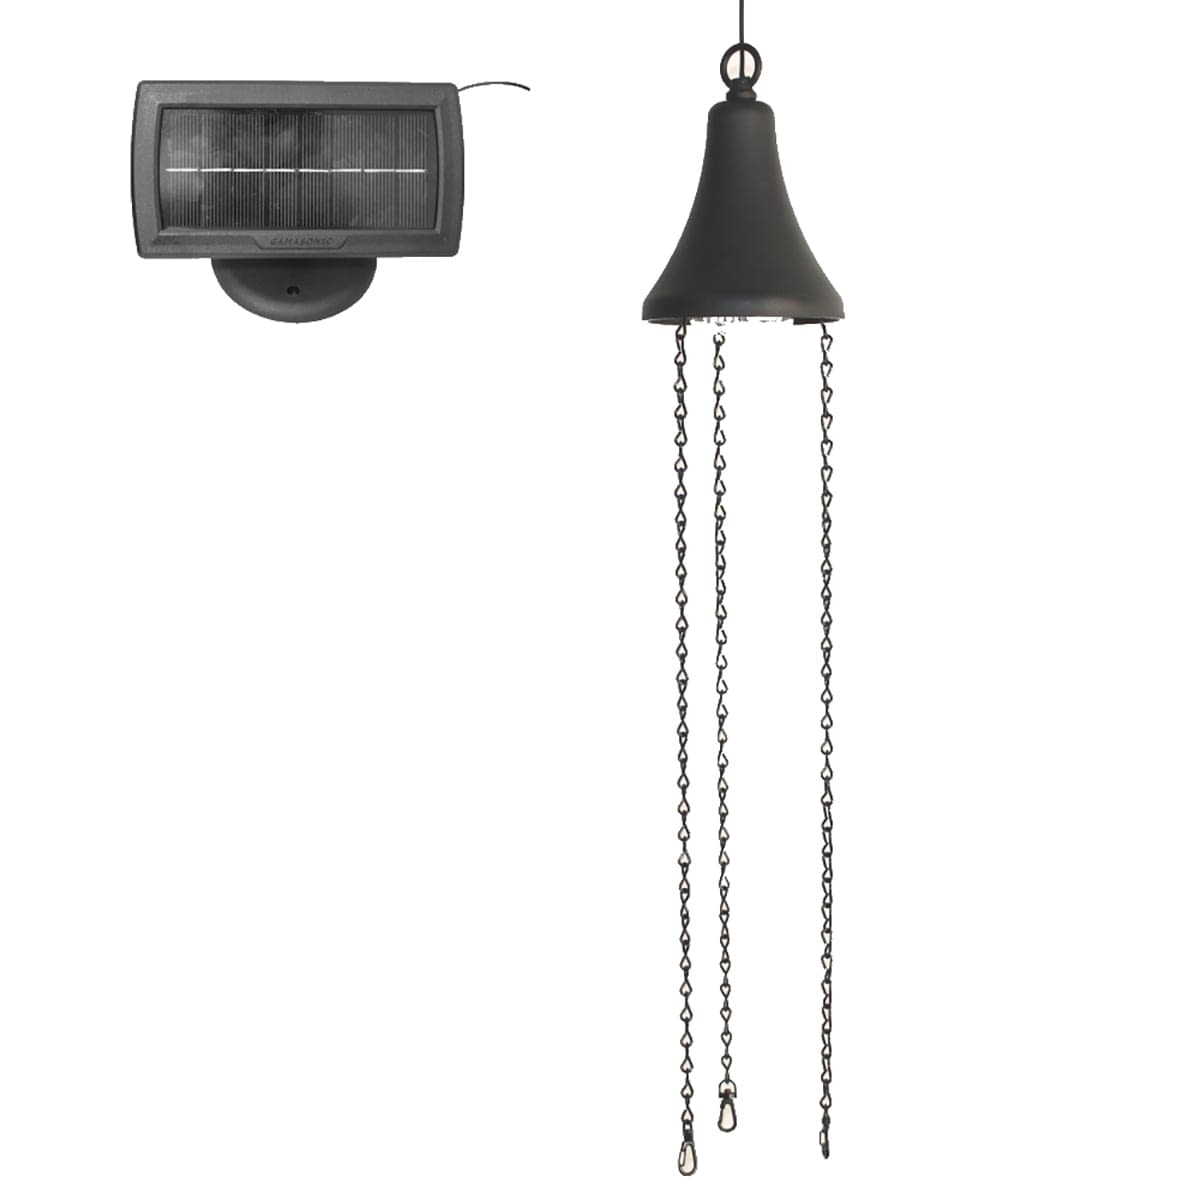 Hanging Solar Accent Light with Attachable Planter Basket GS-6